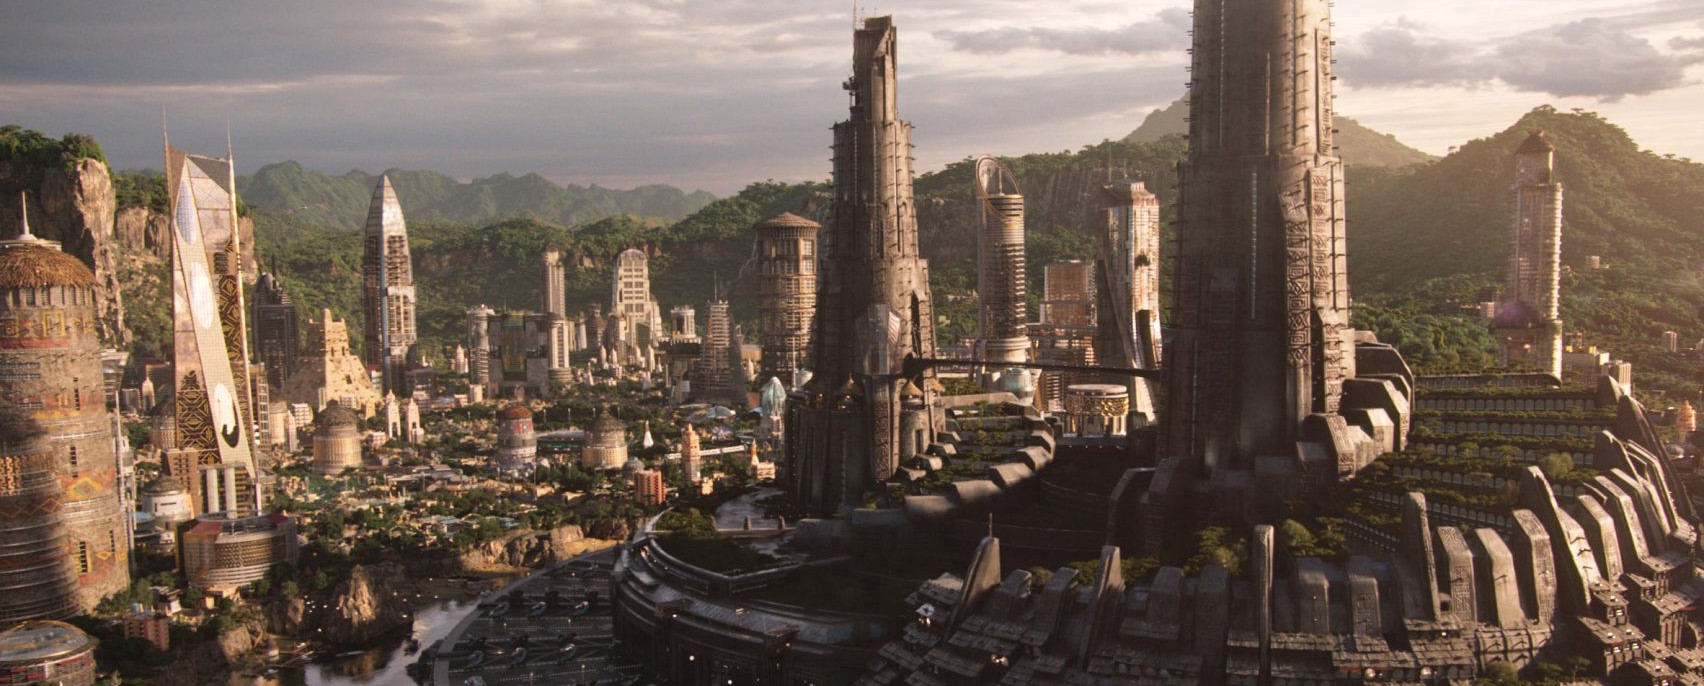 NINE SCI-FI SUBGENRES TO HELP YOU UNDERSTAND THE FUTURE